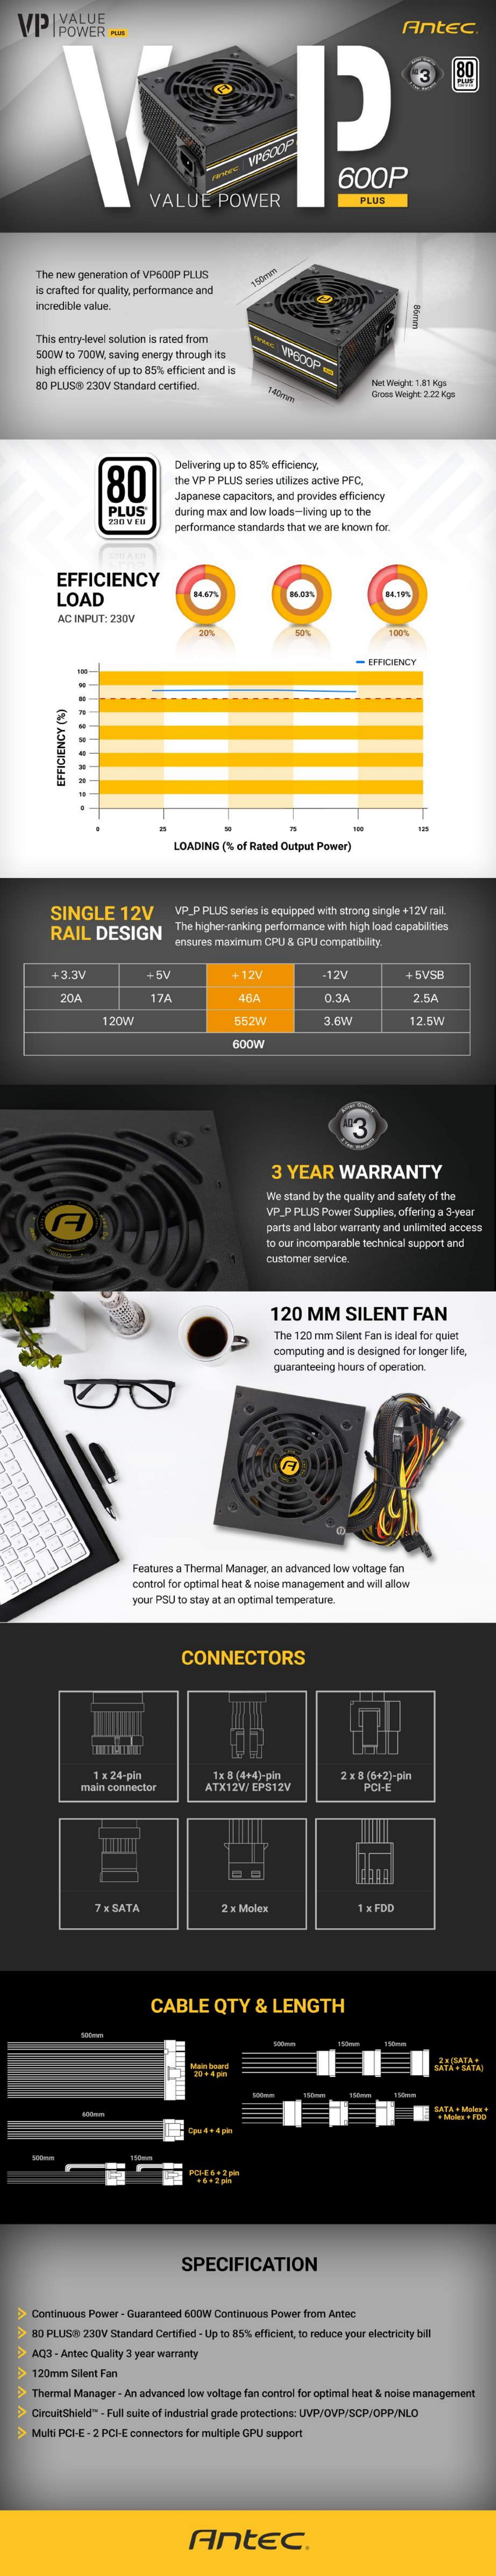 Antec VP600 PLUS 600w PSU 120mm Silent Fan PLUS 2019 version MEPS Compliant